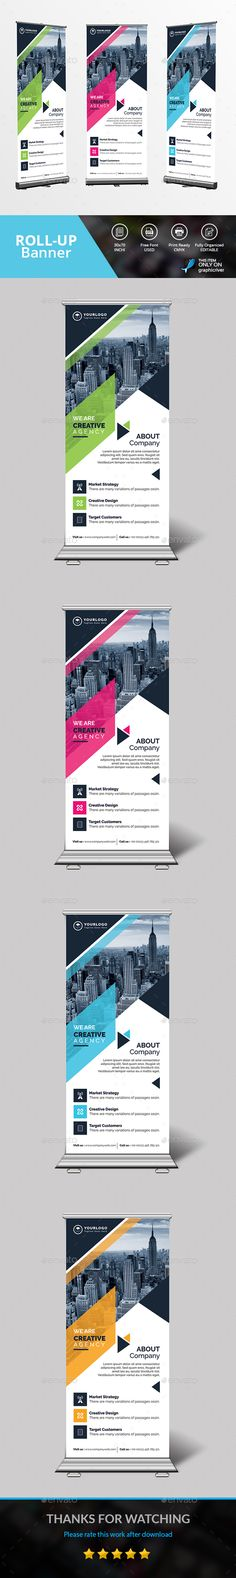 Roll Up Banner - Signage Print Templates Download here: https://graphicriver.net/item/roll-up-banner/19479561?https://graphicriver.net/item/corporate-rollup-banner/19383696?ref=classicdesignp